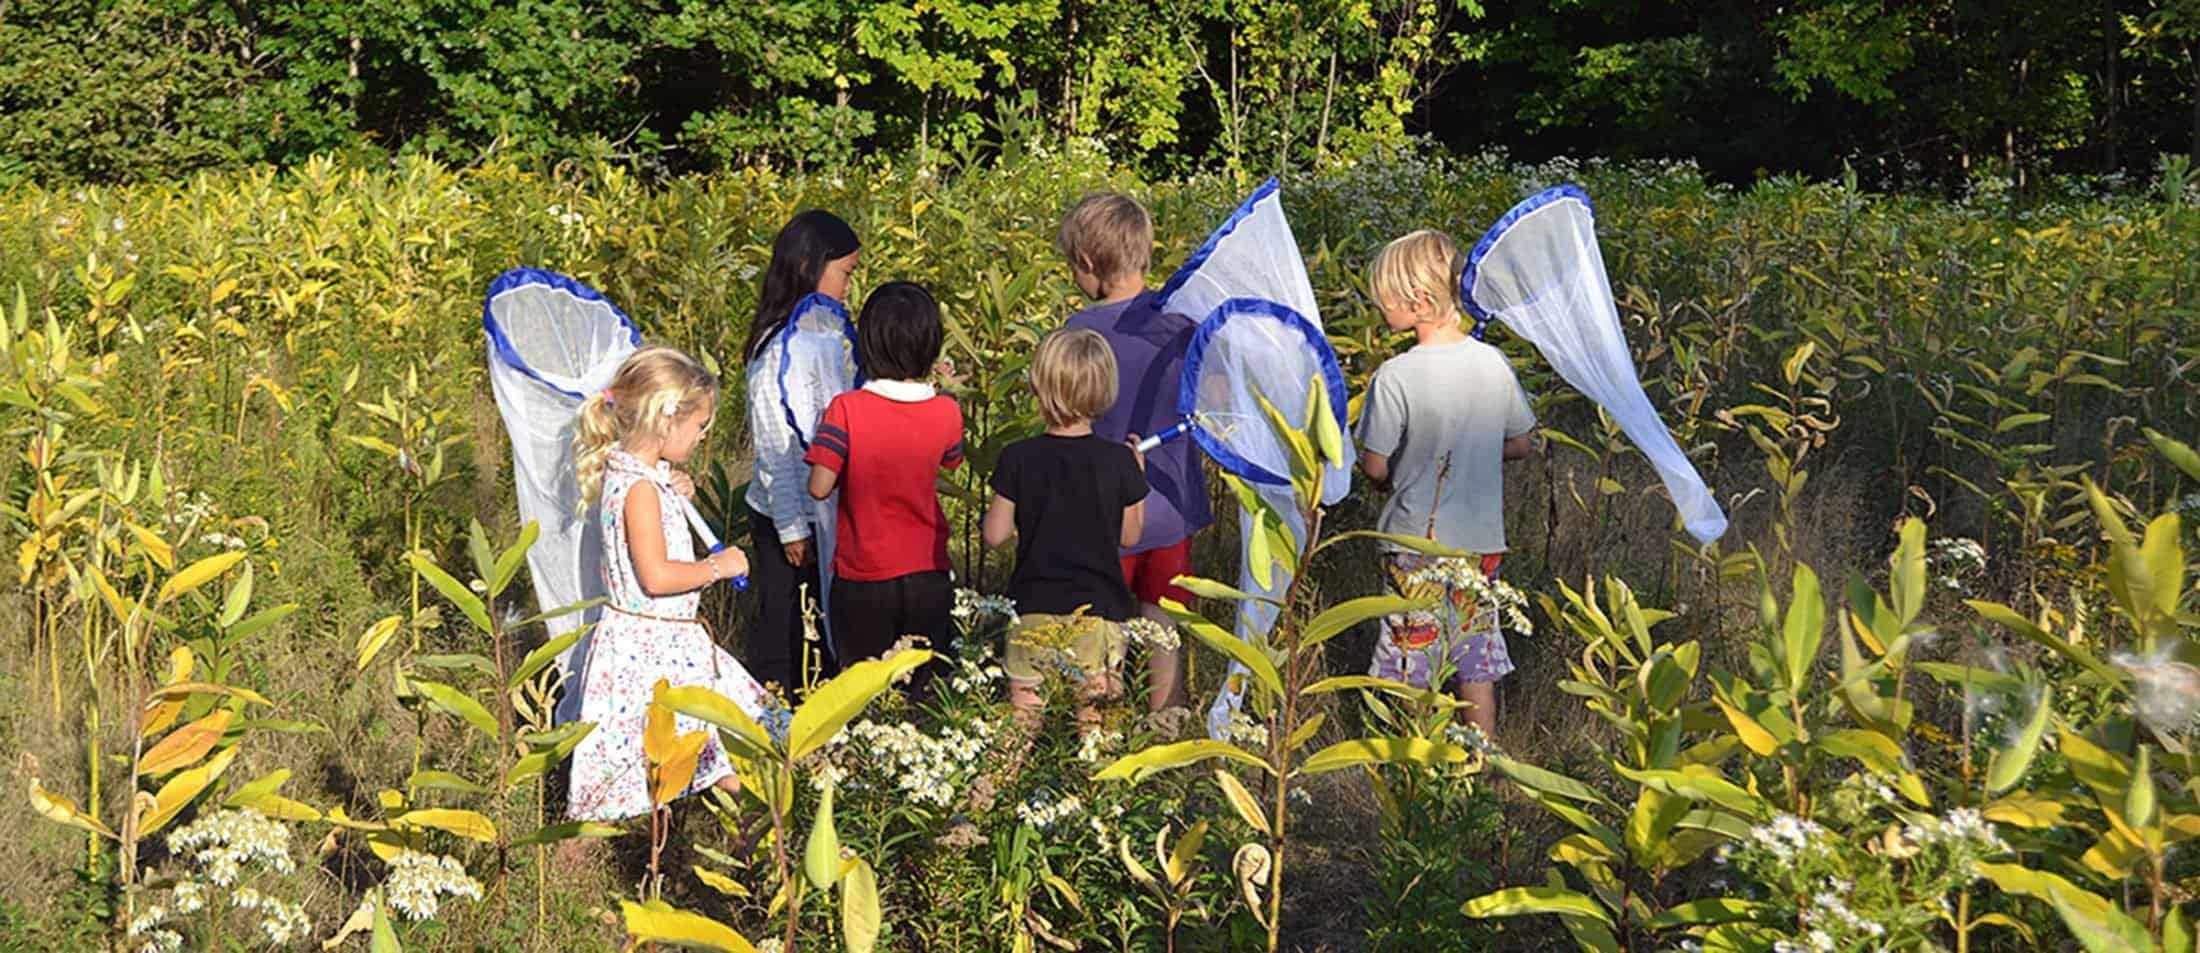 Children look for monarch butterflies during a citizen science program to tag butterflies for Monarch Watch. Photo: Ashley Megquier.